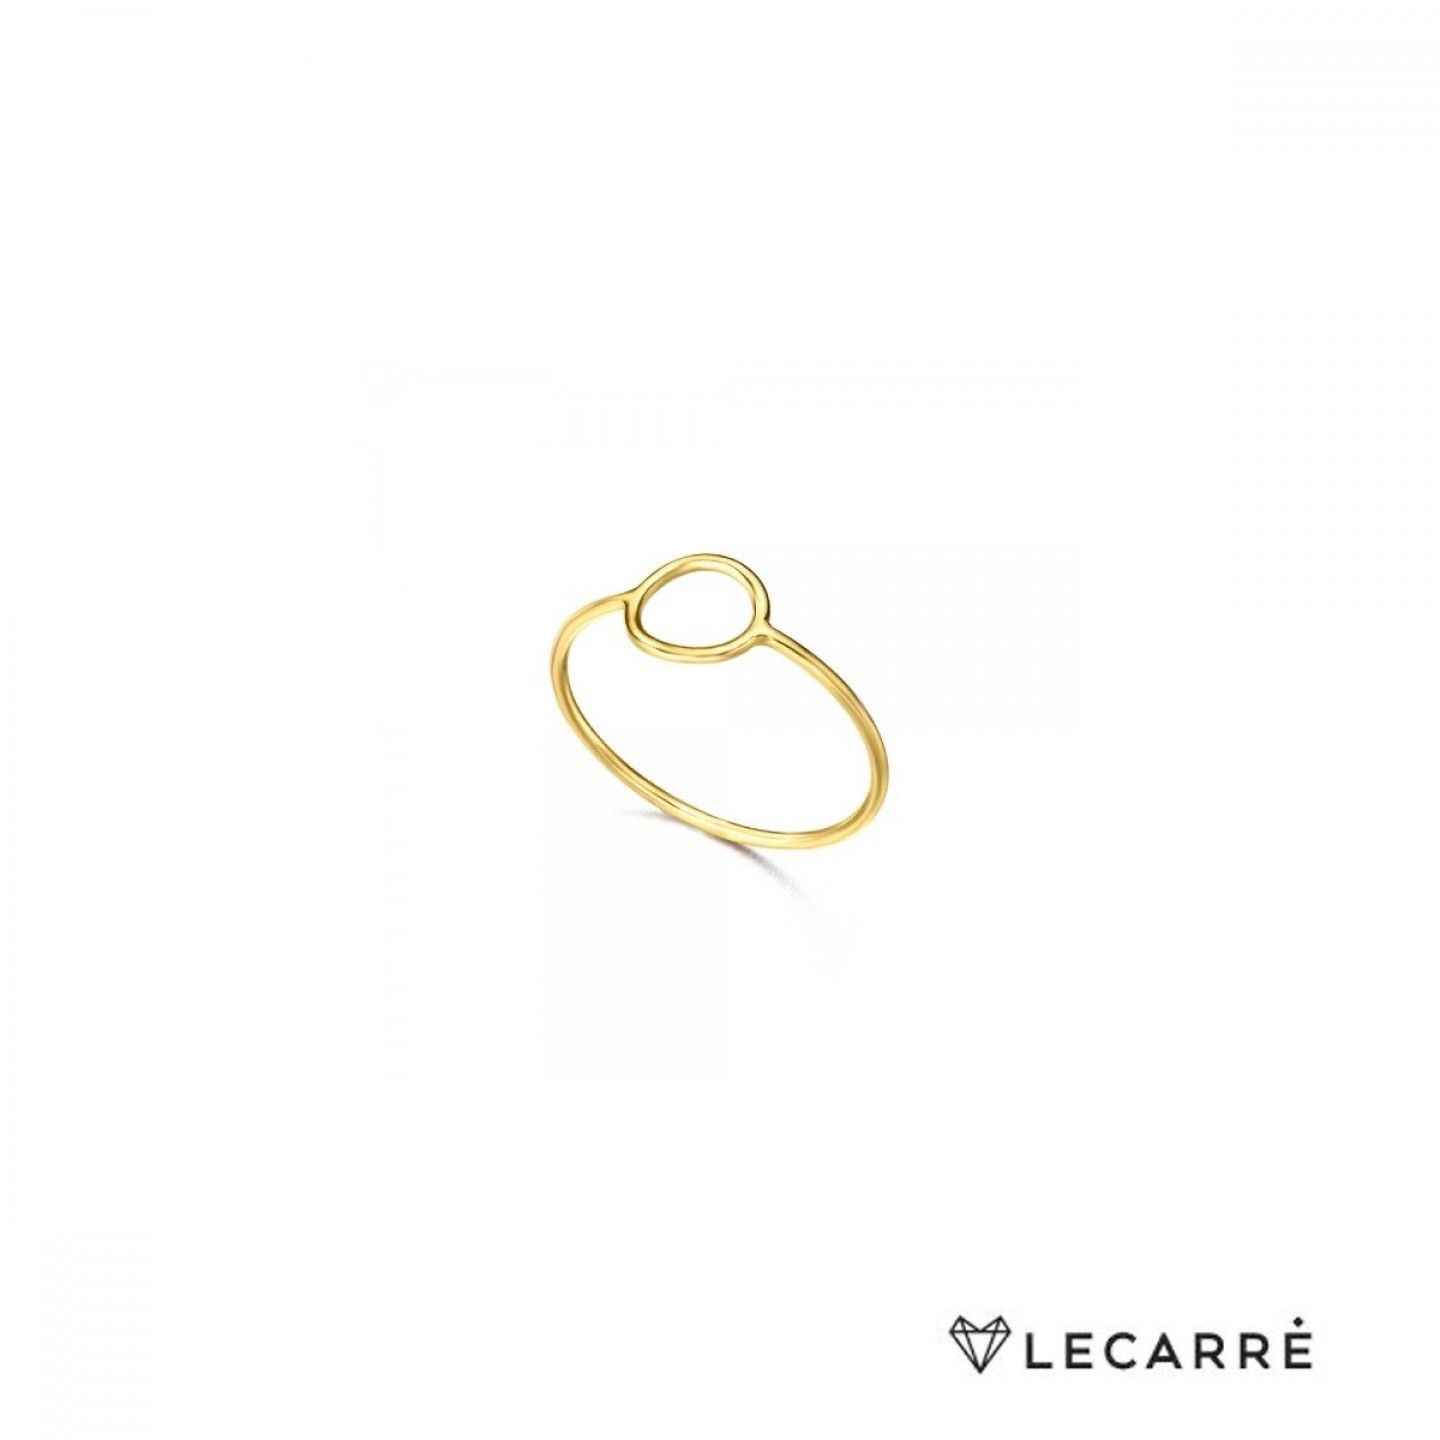 ANEL LECARRÉ OURO 18K